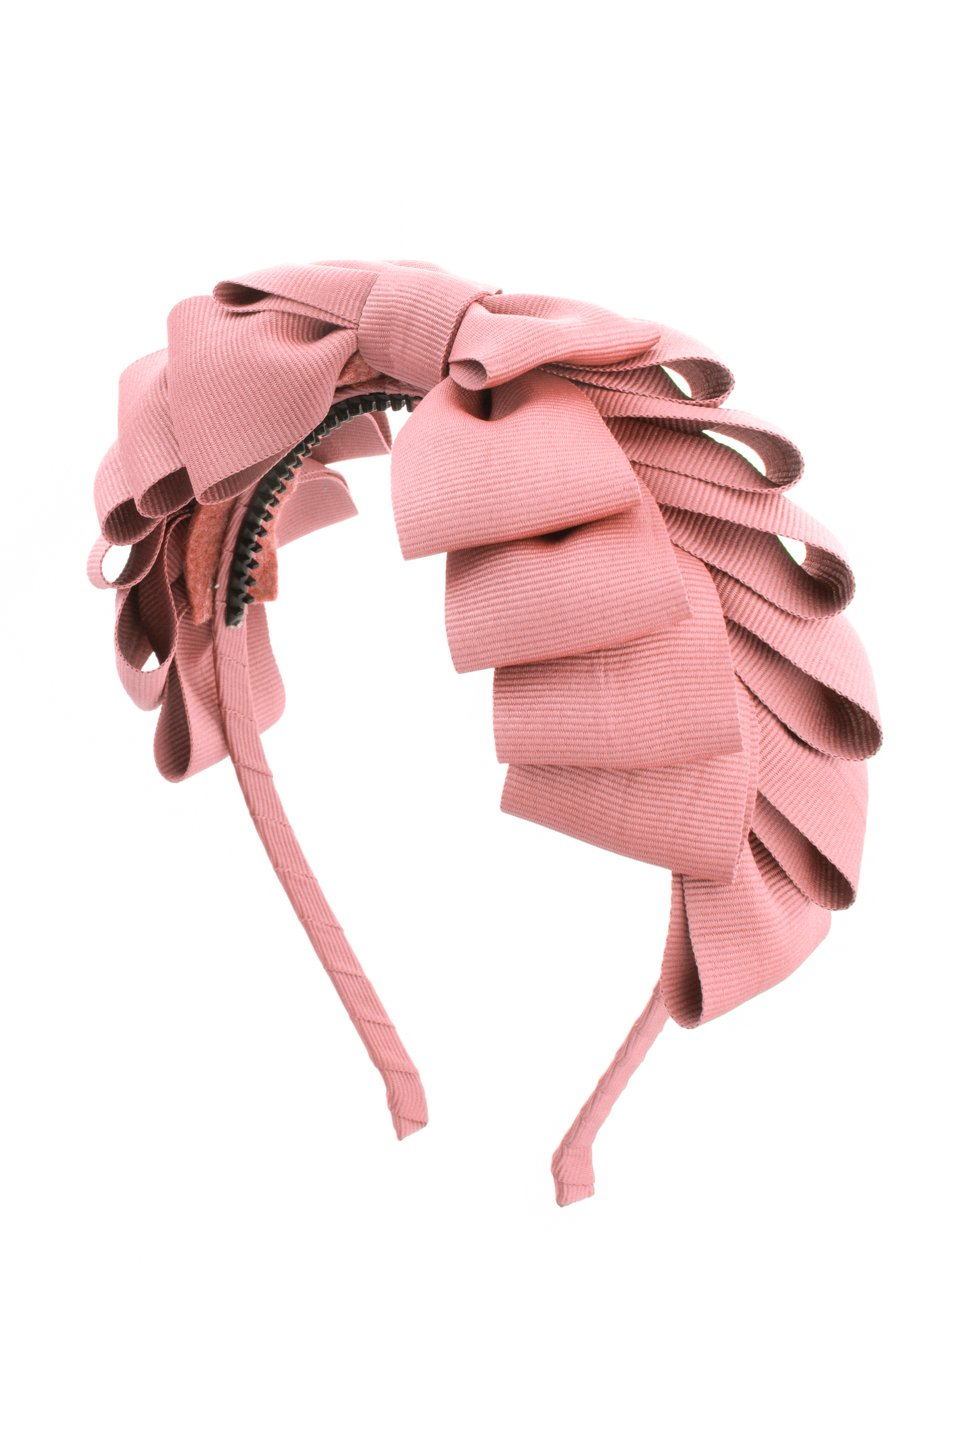 Pleated Ribbon Grosgrain Headband - Sweet Nectar - PROJECT 6, modest fashion